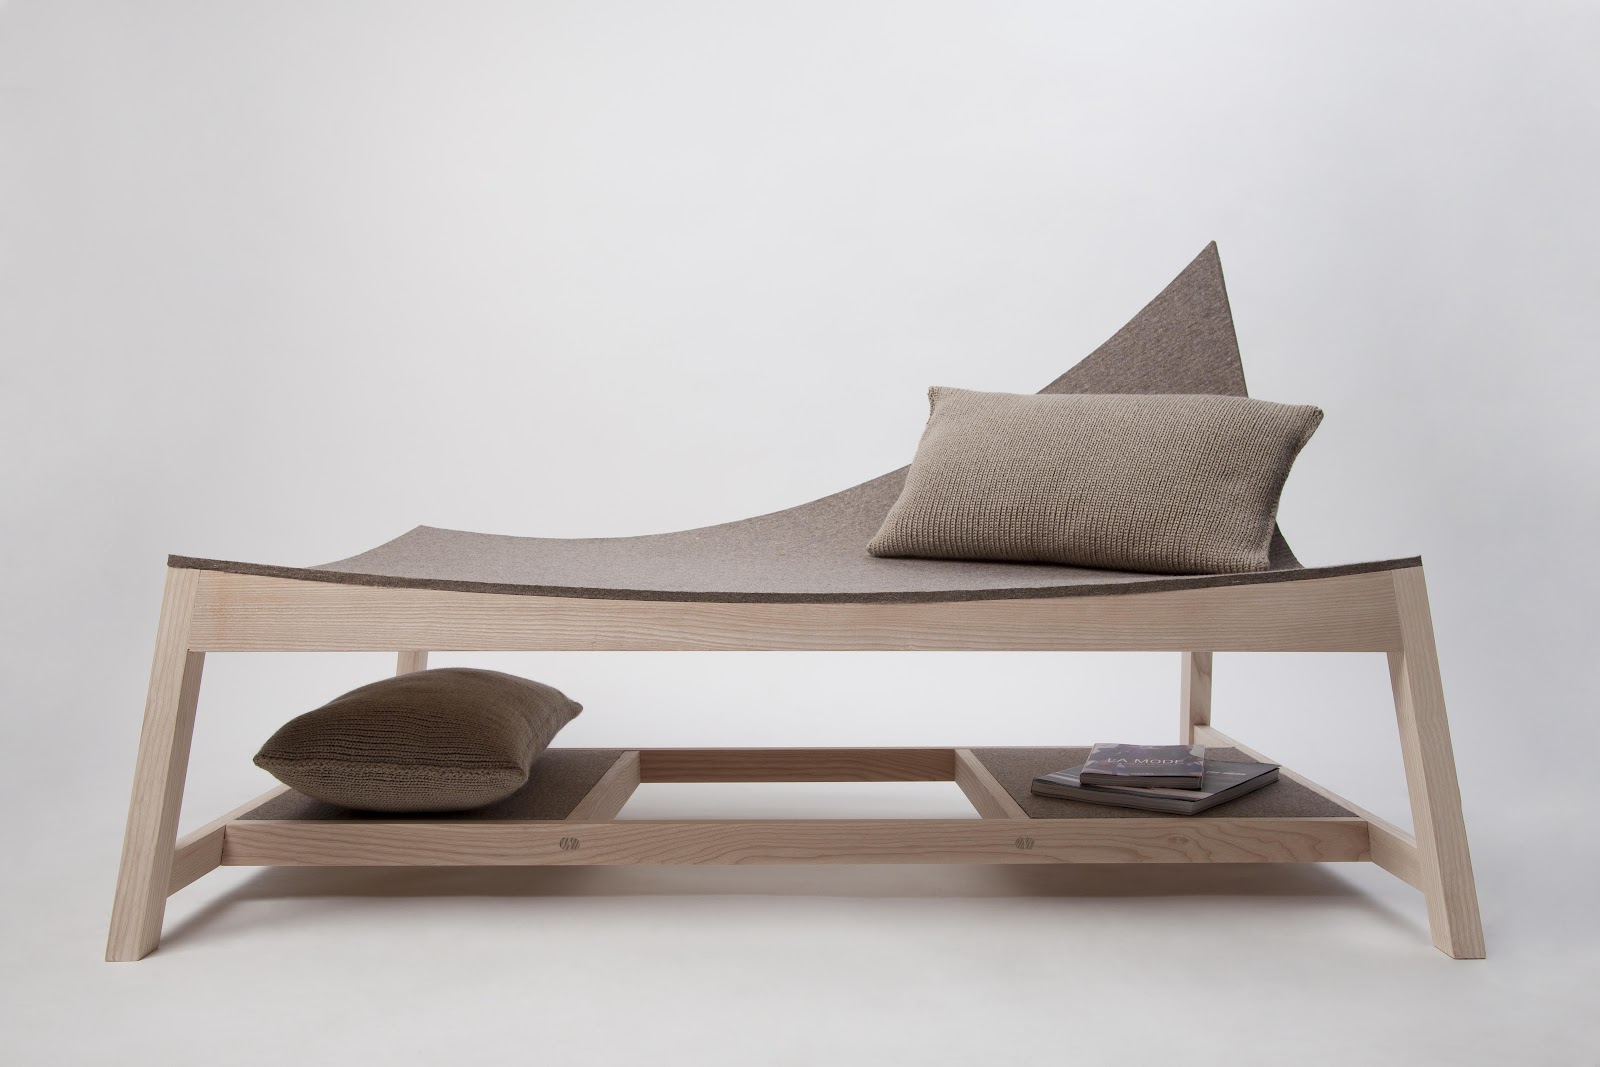 awesome design ideas experimental seating furniture by tam s